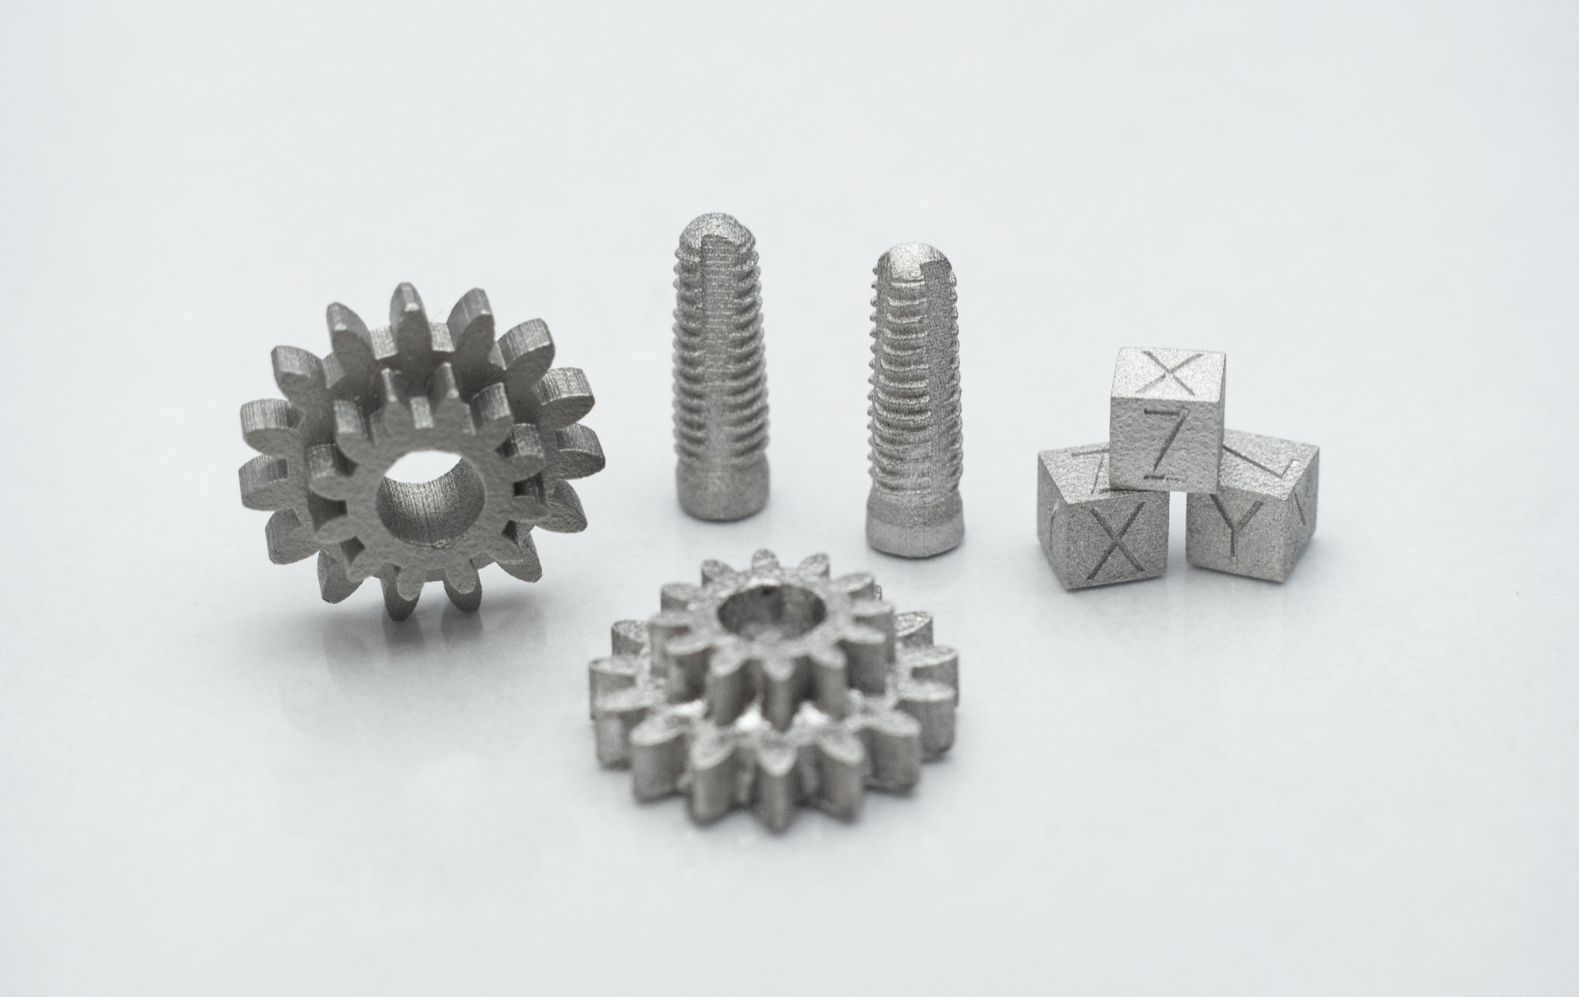 Metal parts printed on the Hammer Lab35 metal 3D printer. Image by Incus GmbH.